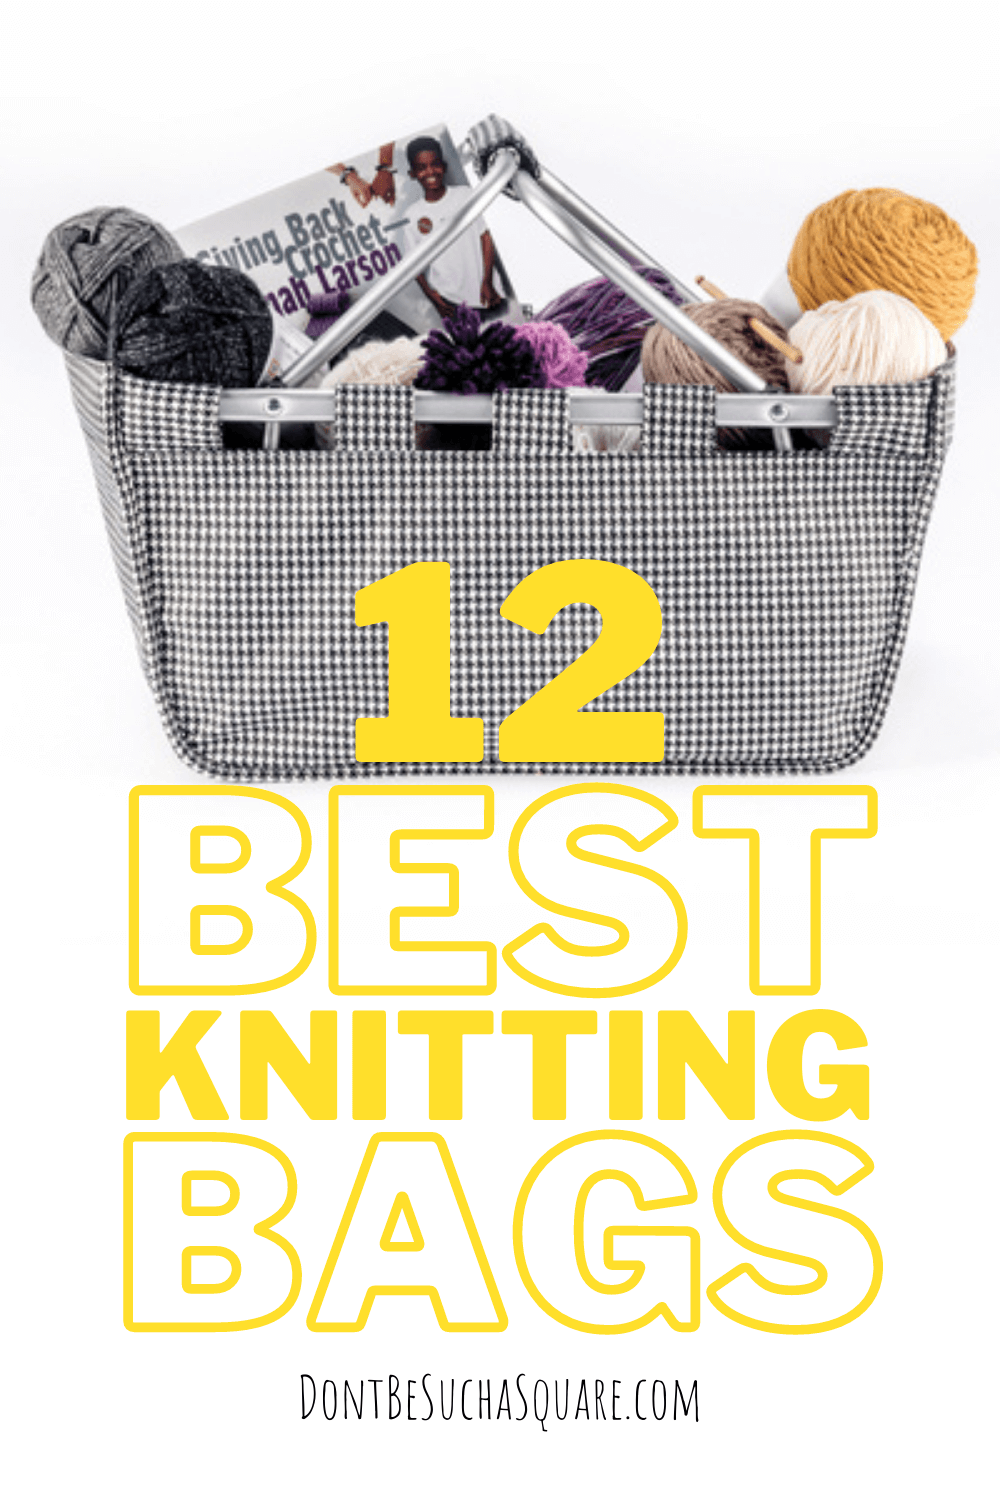 A basket perfect for carrying yarn and knitting projects in